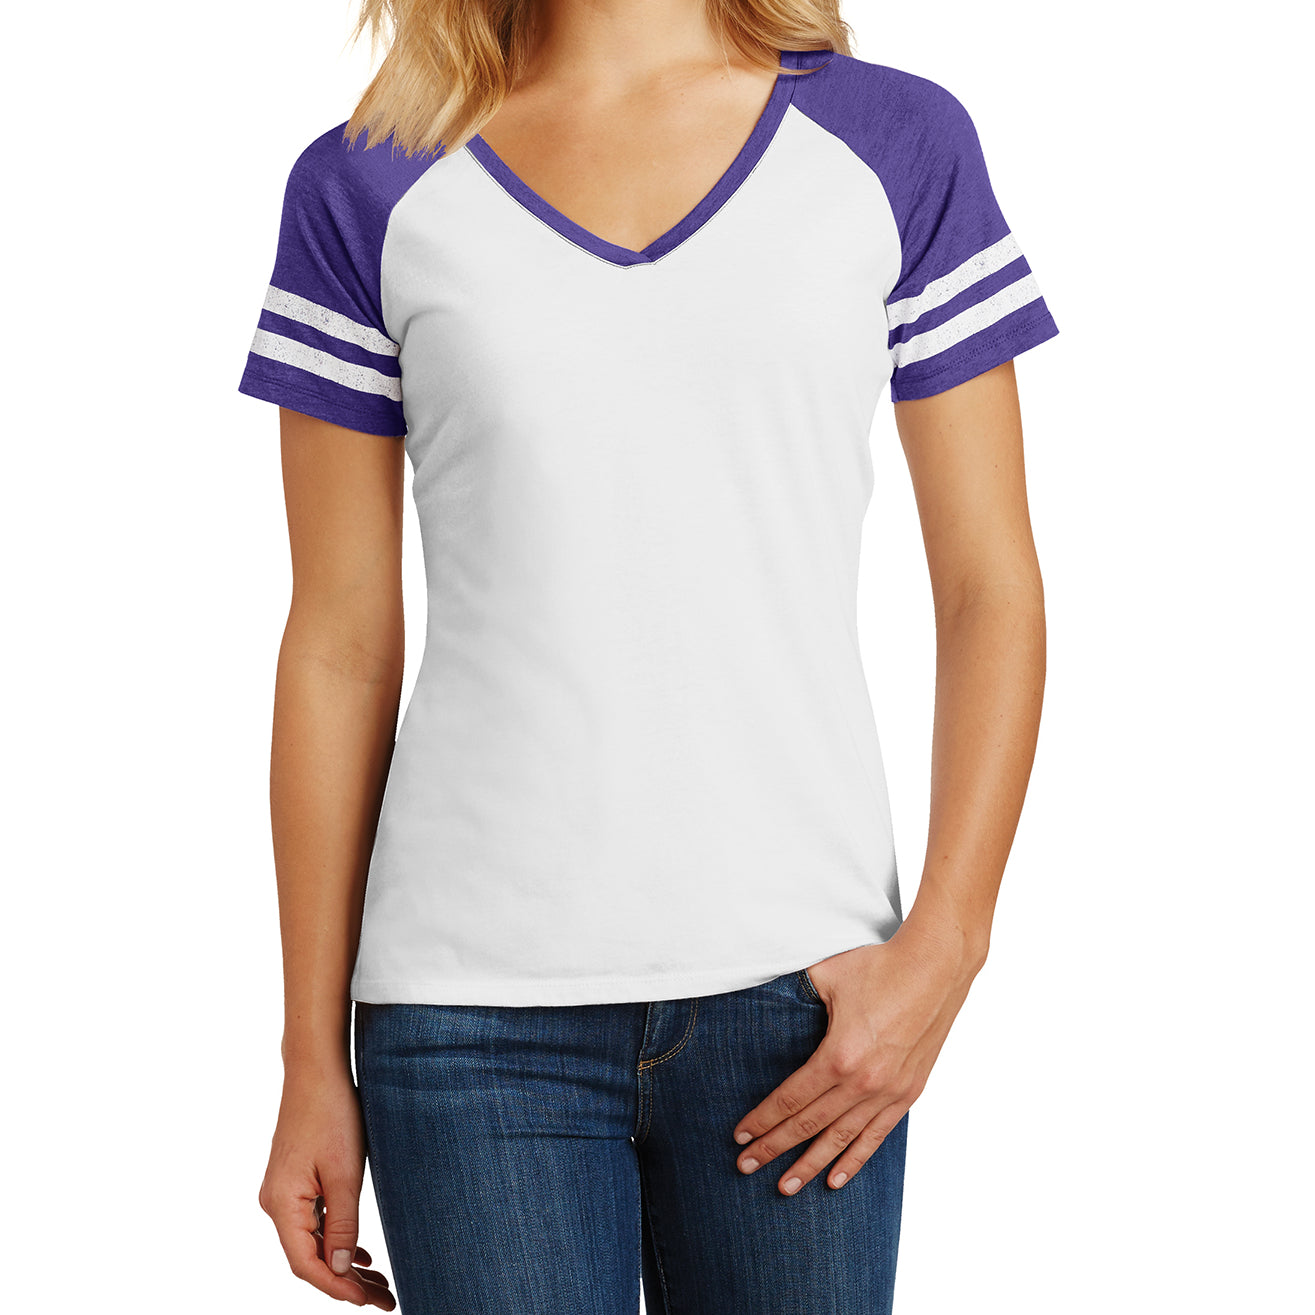 Womens Game V-Neck Tee - White/Heathered Purple - Front